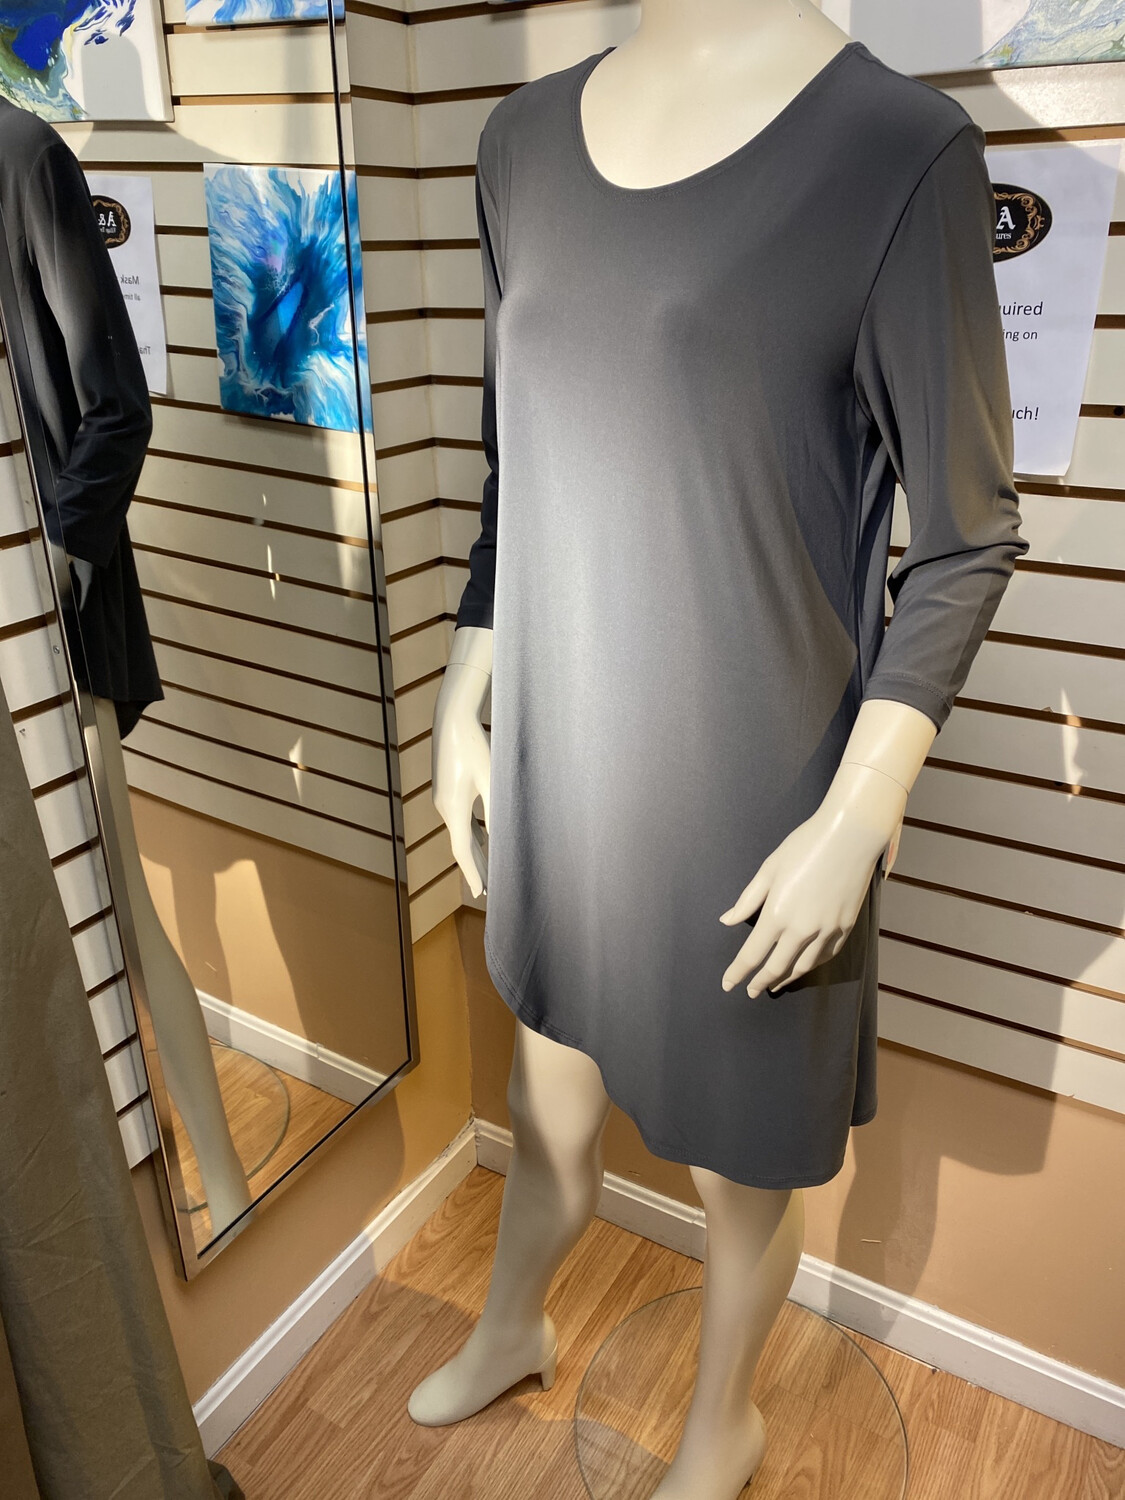 Major Deal Clara SunWoo Gathered Side Gray Tunic. Only 1 Size L /14 Matching Pant Available.